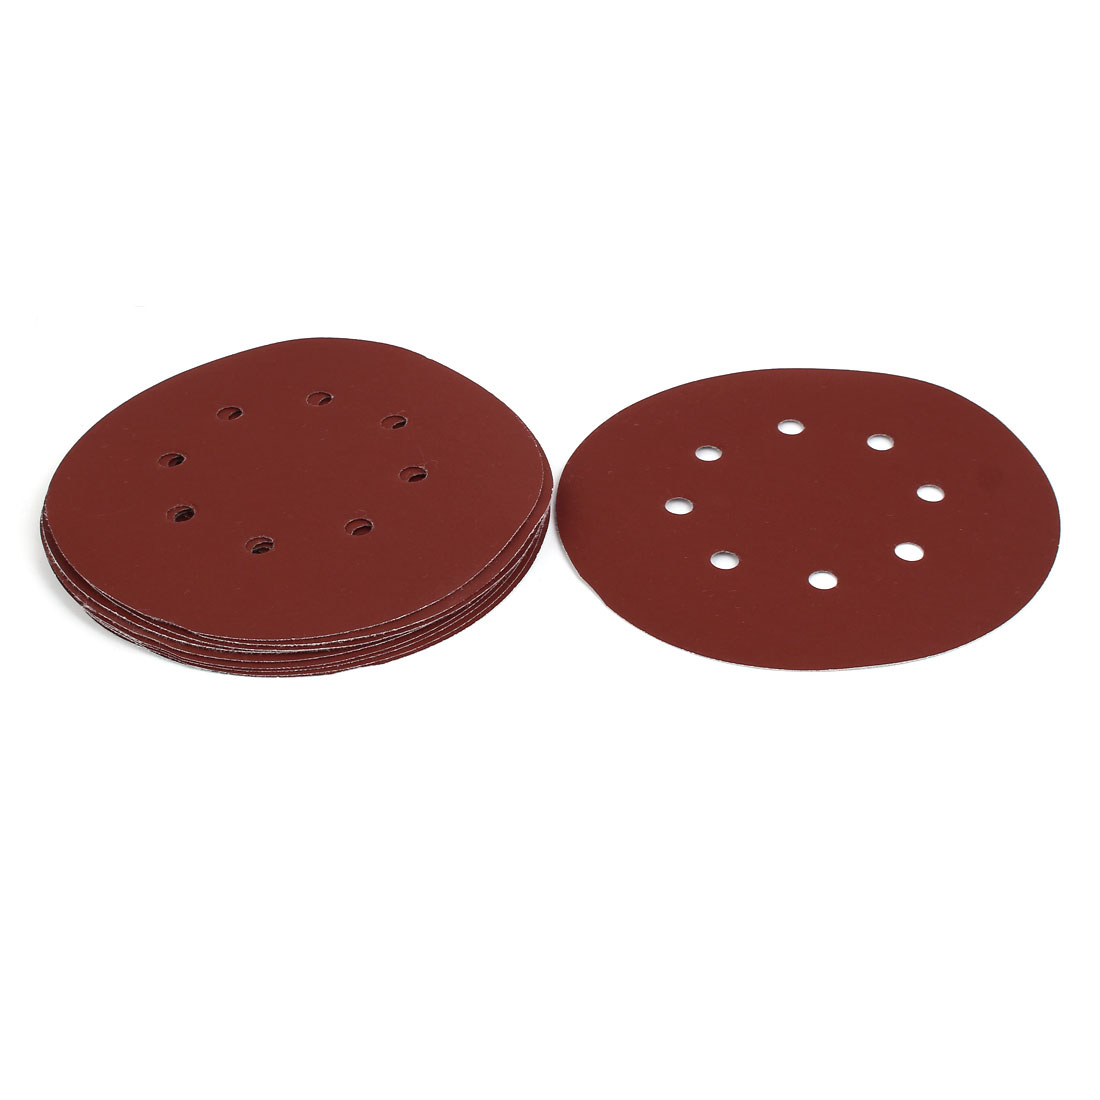 "600 Grit 8 Hole 7"" Diameter Sandpaper Hook Loop Sanding Disc 10 Pcs"